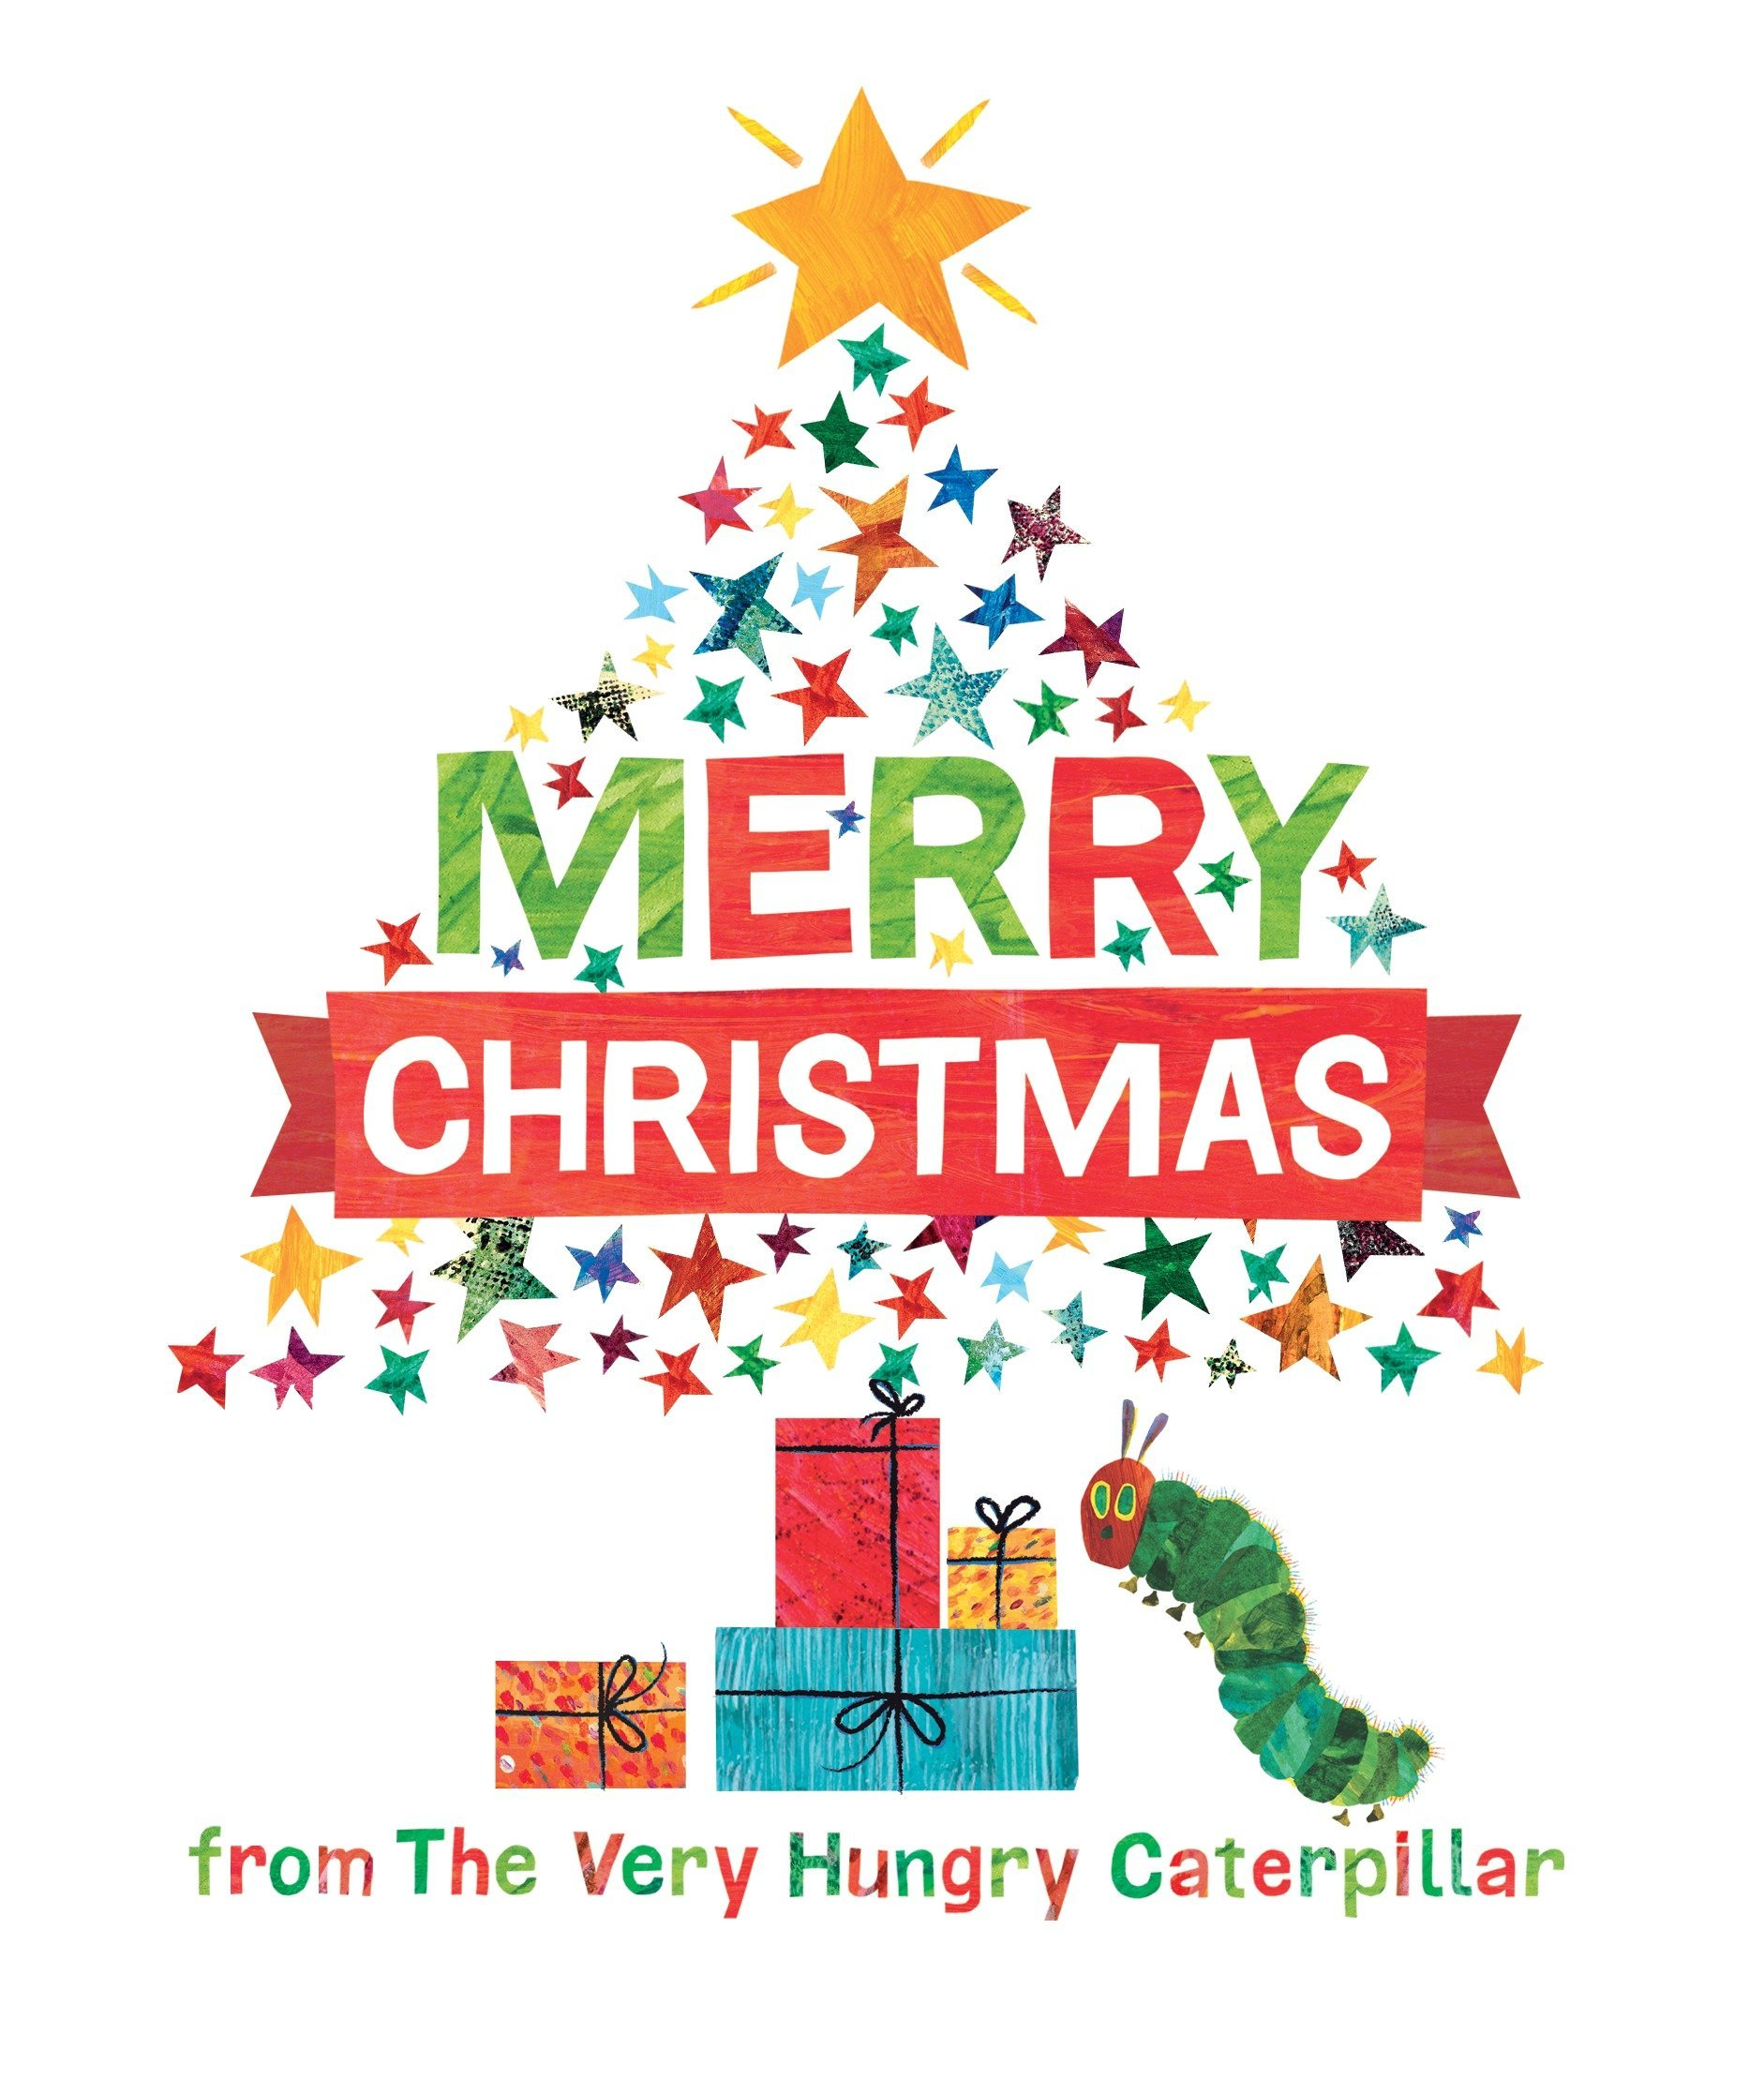 Merry Christmas Images.Merry Christmas From The Very Hungry Caterpillar The World